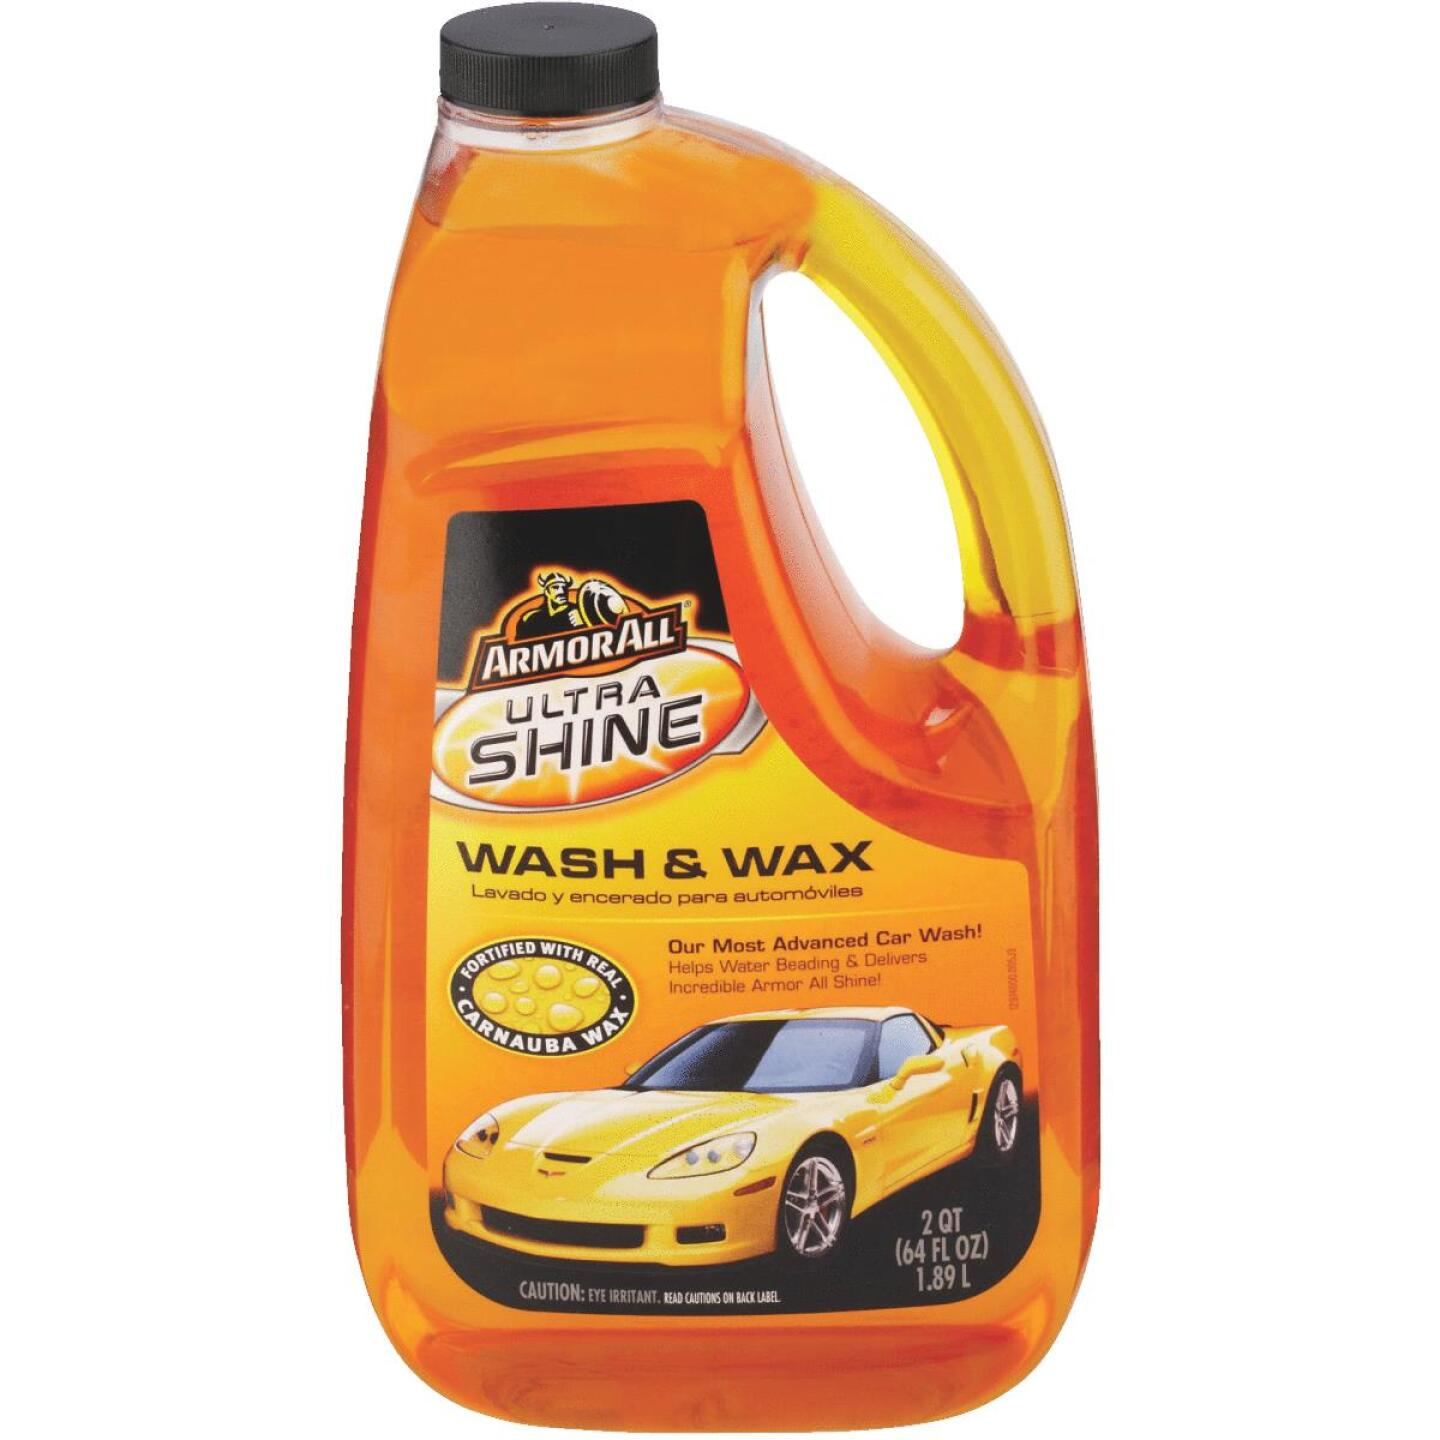 Armor All 64 Oz. Liquid Ultra Shine Car Wash & Wax Image 2